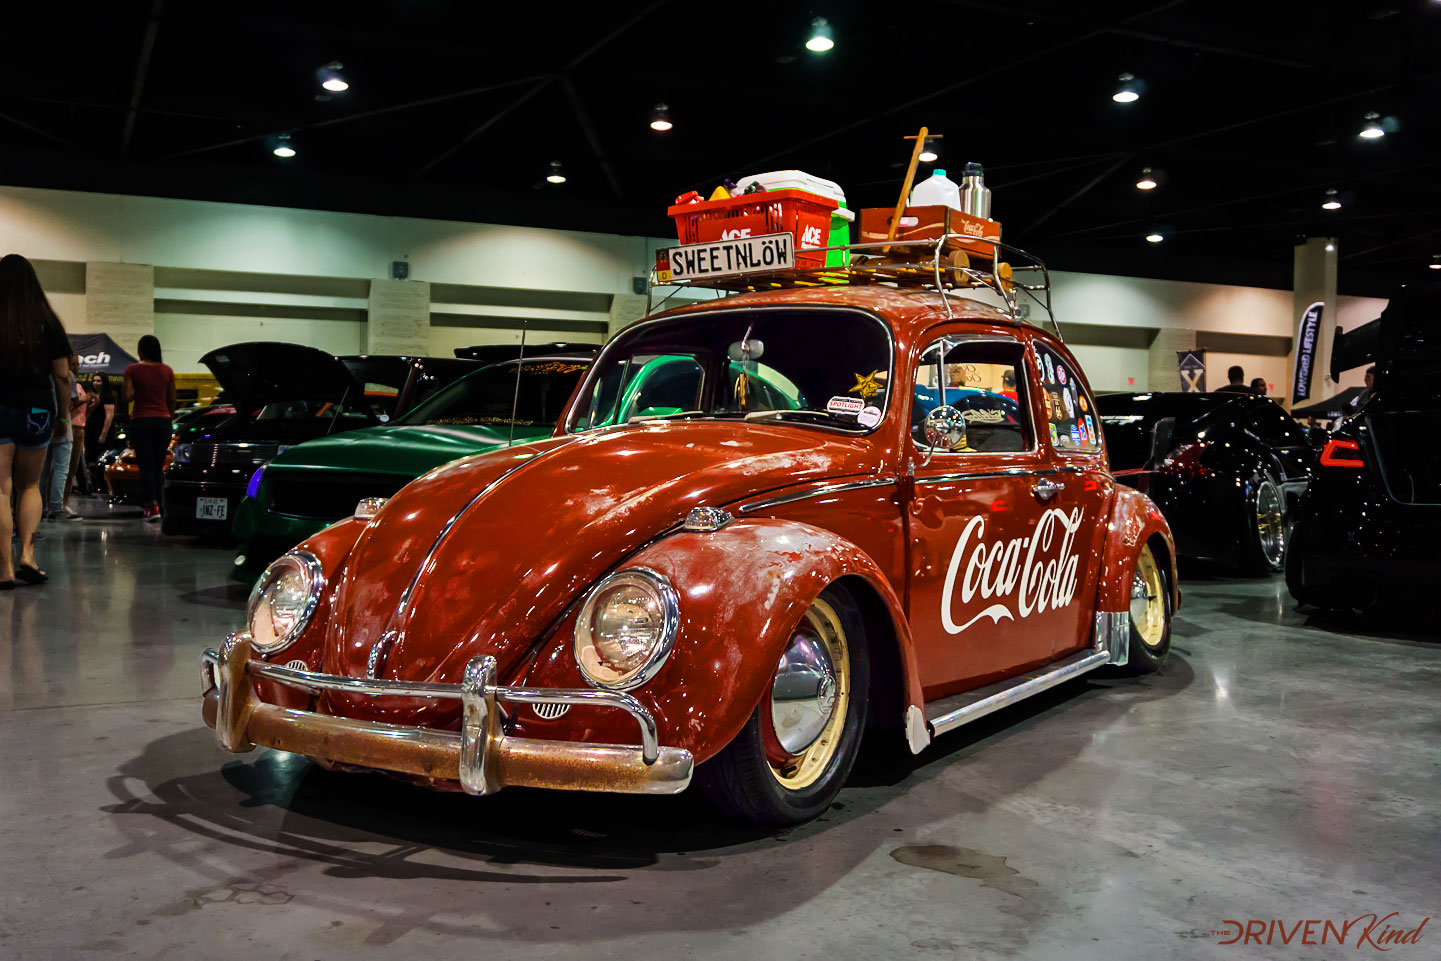 Classic VW Beetle Tuner Evolution Car Show Coverage Daytona Beach by The Driven Kind